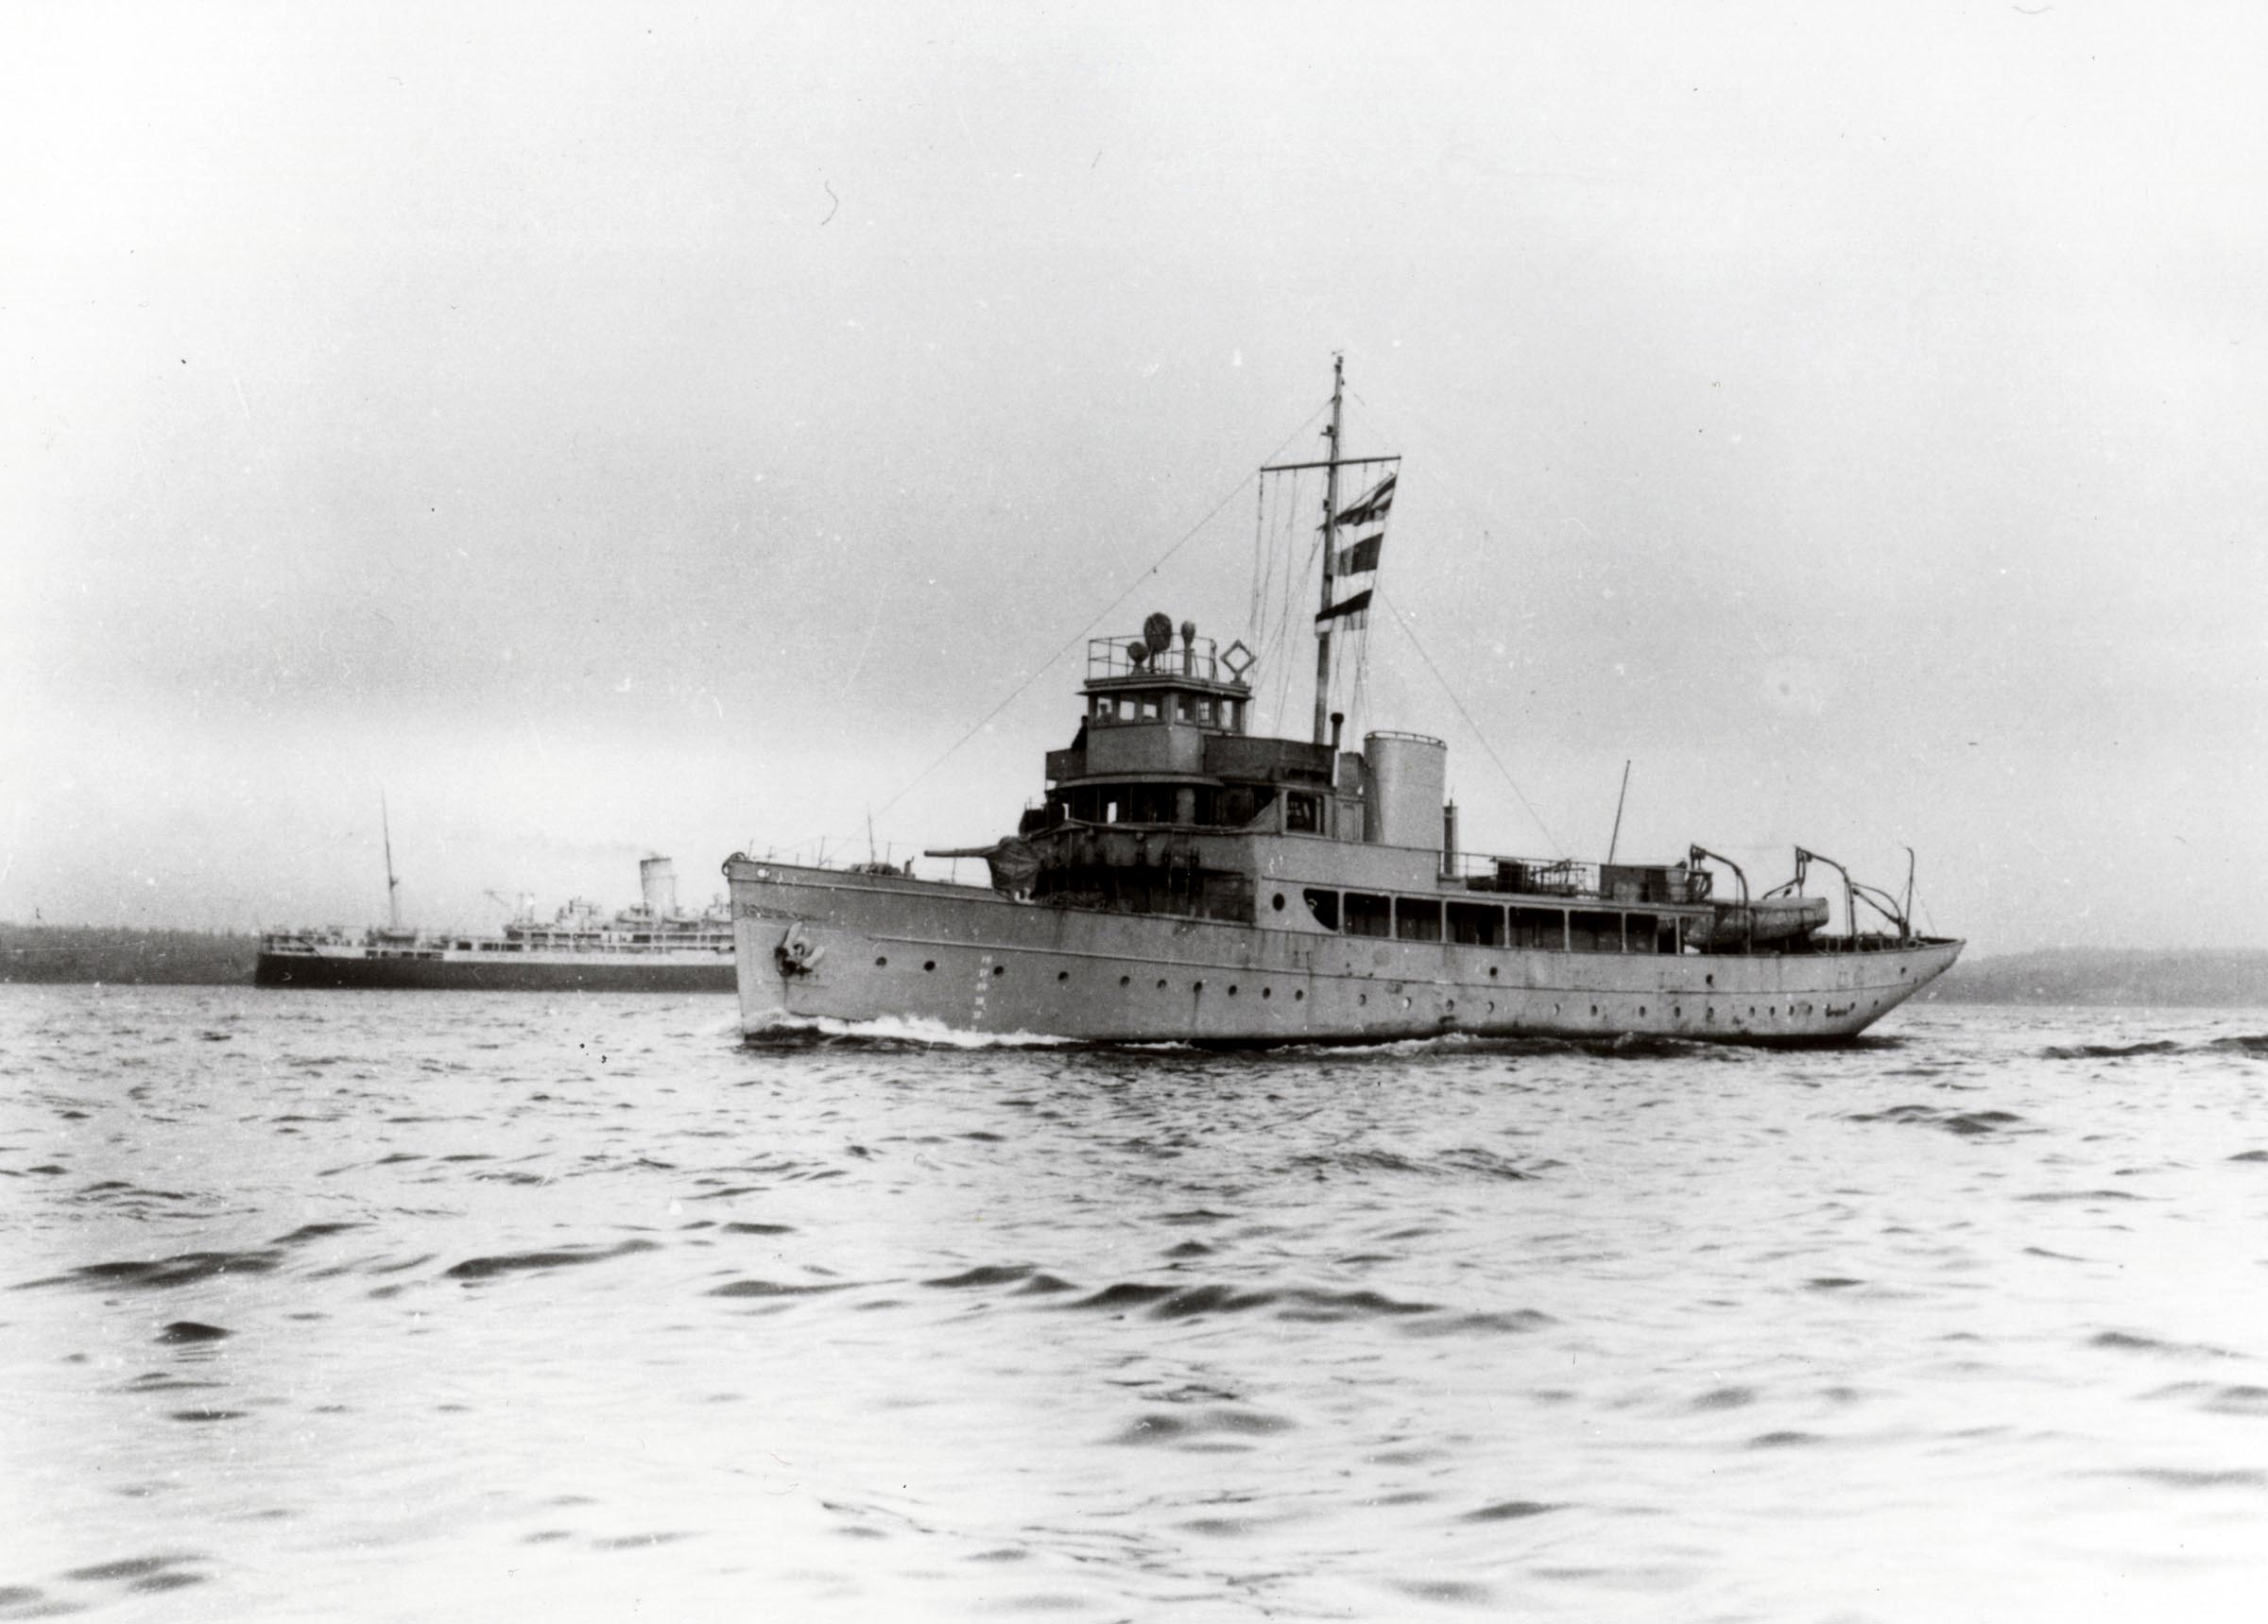 HMCS RACCOON